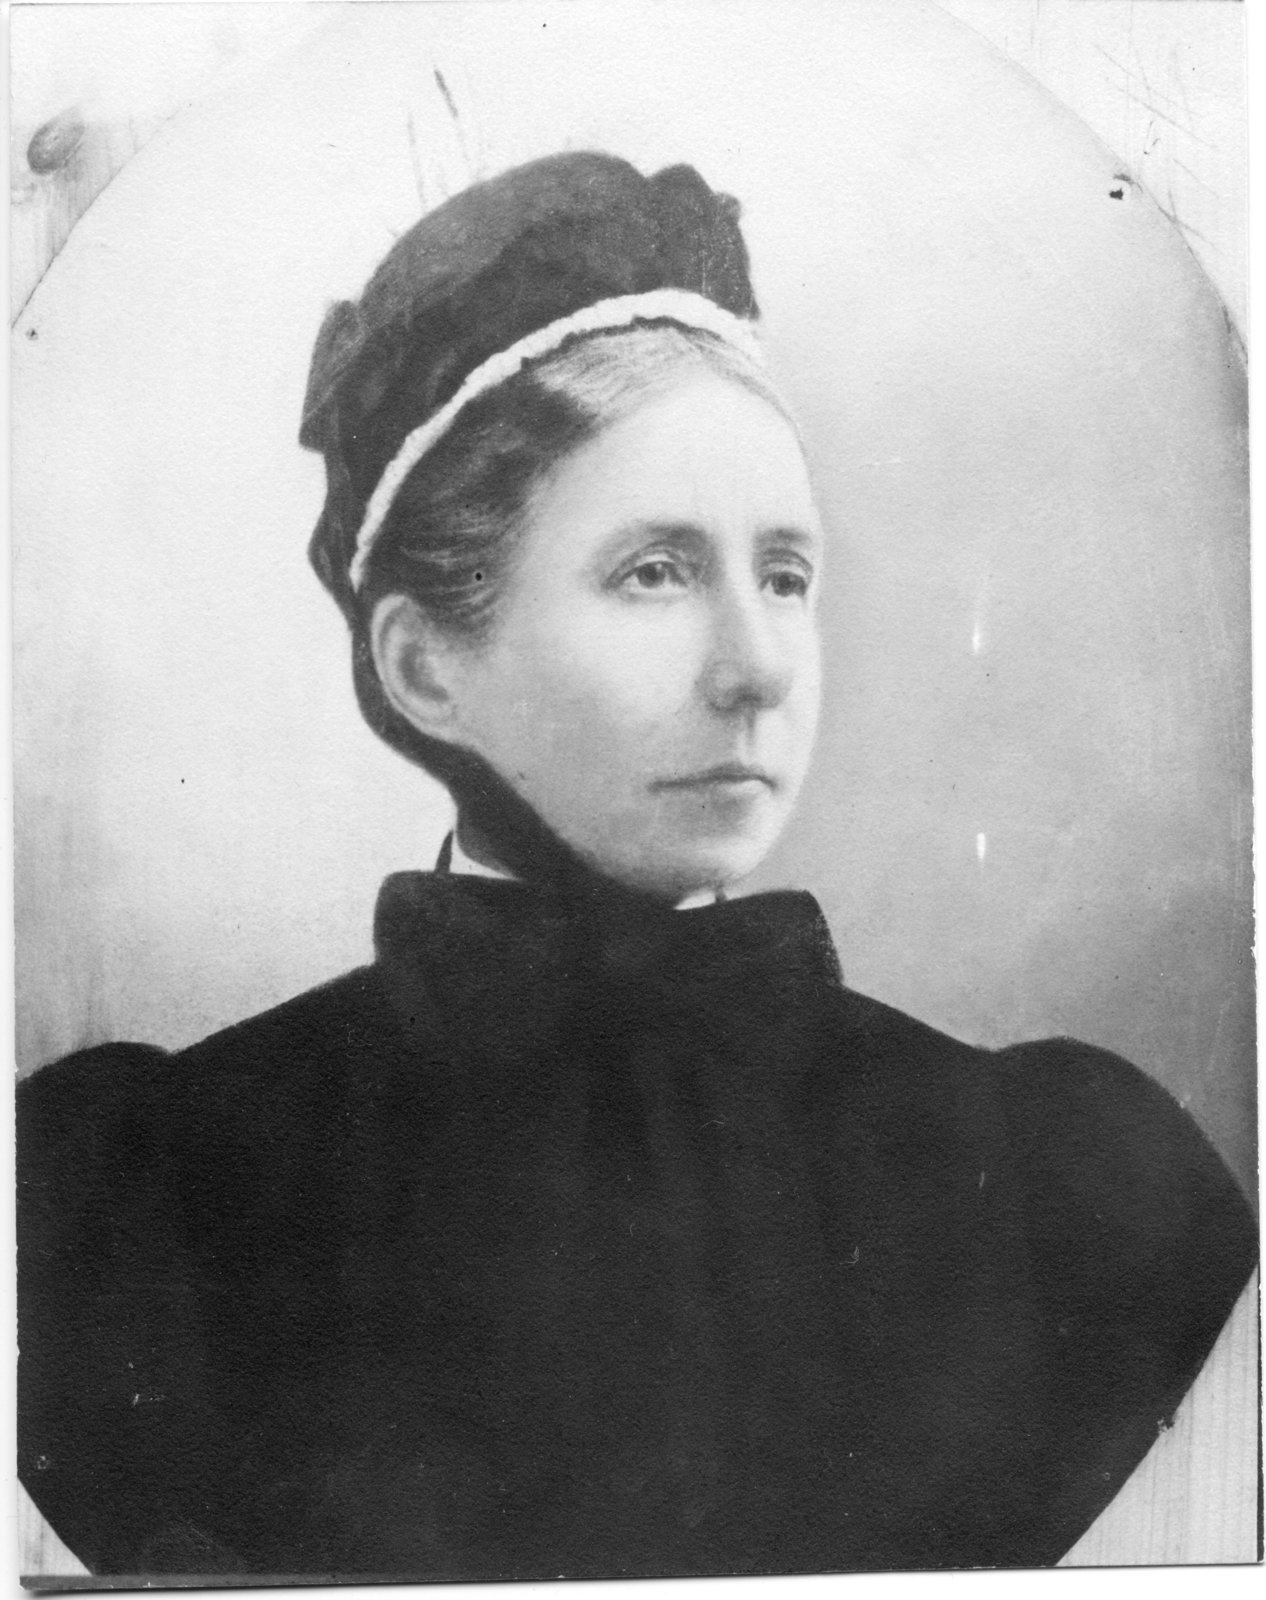 A head and shoulders portrait of Harriet Boomer in a dark dress with her hair primly tucked up under her dark cap trimmed with white lace. The cap is tied under the chin.